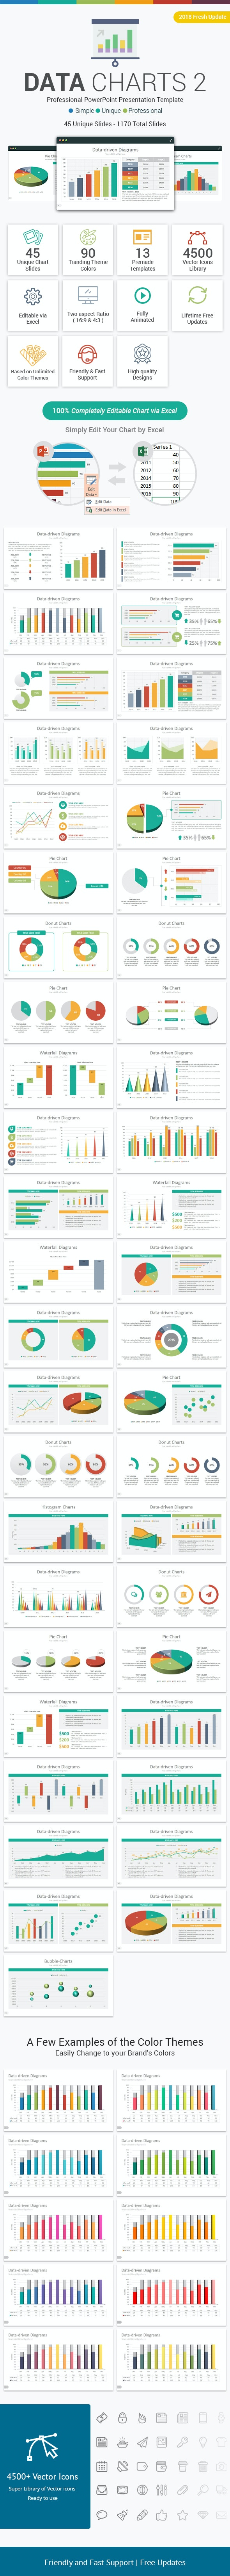 Data Charts 2 PowerPoint Template - Fully Editable - Finance PowerPoint Templates